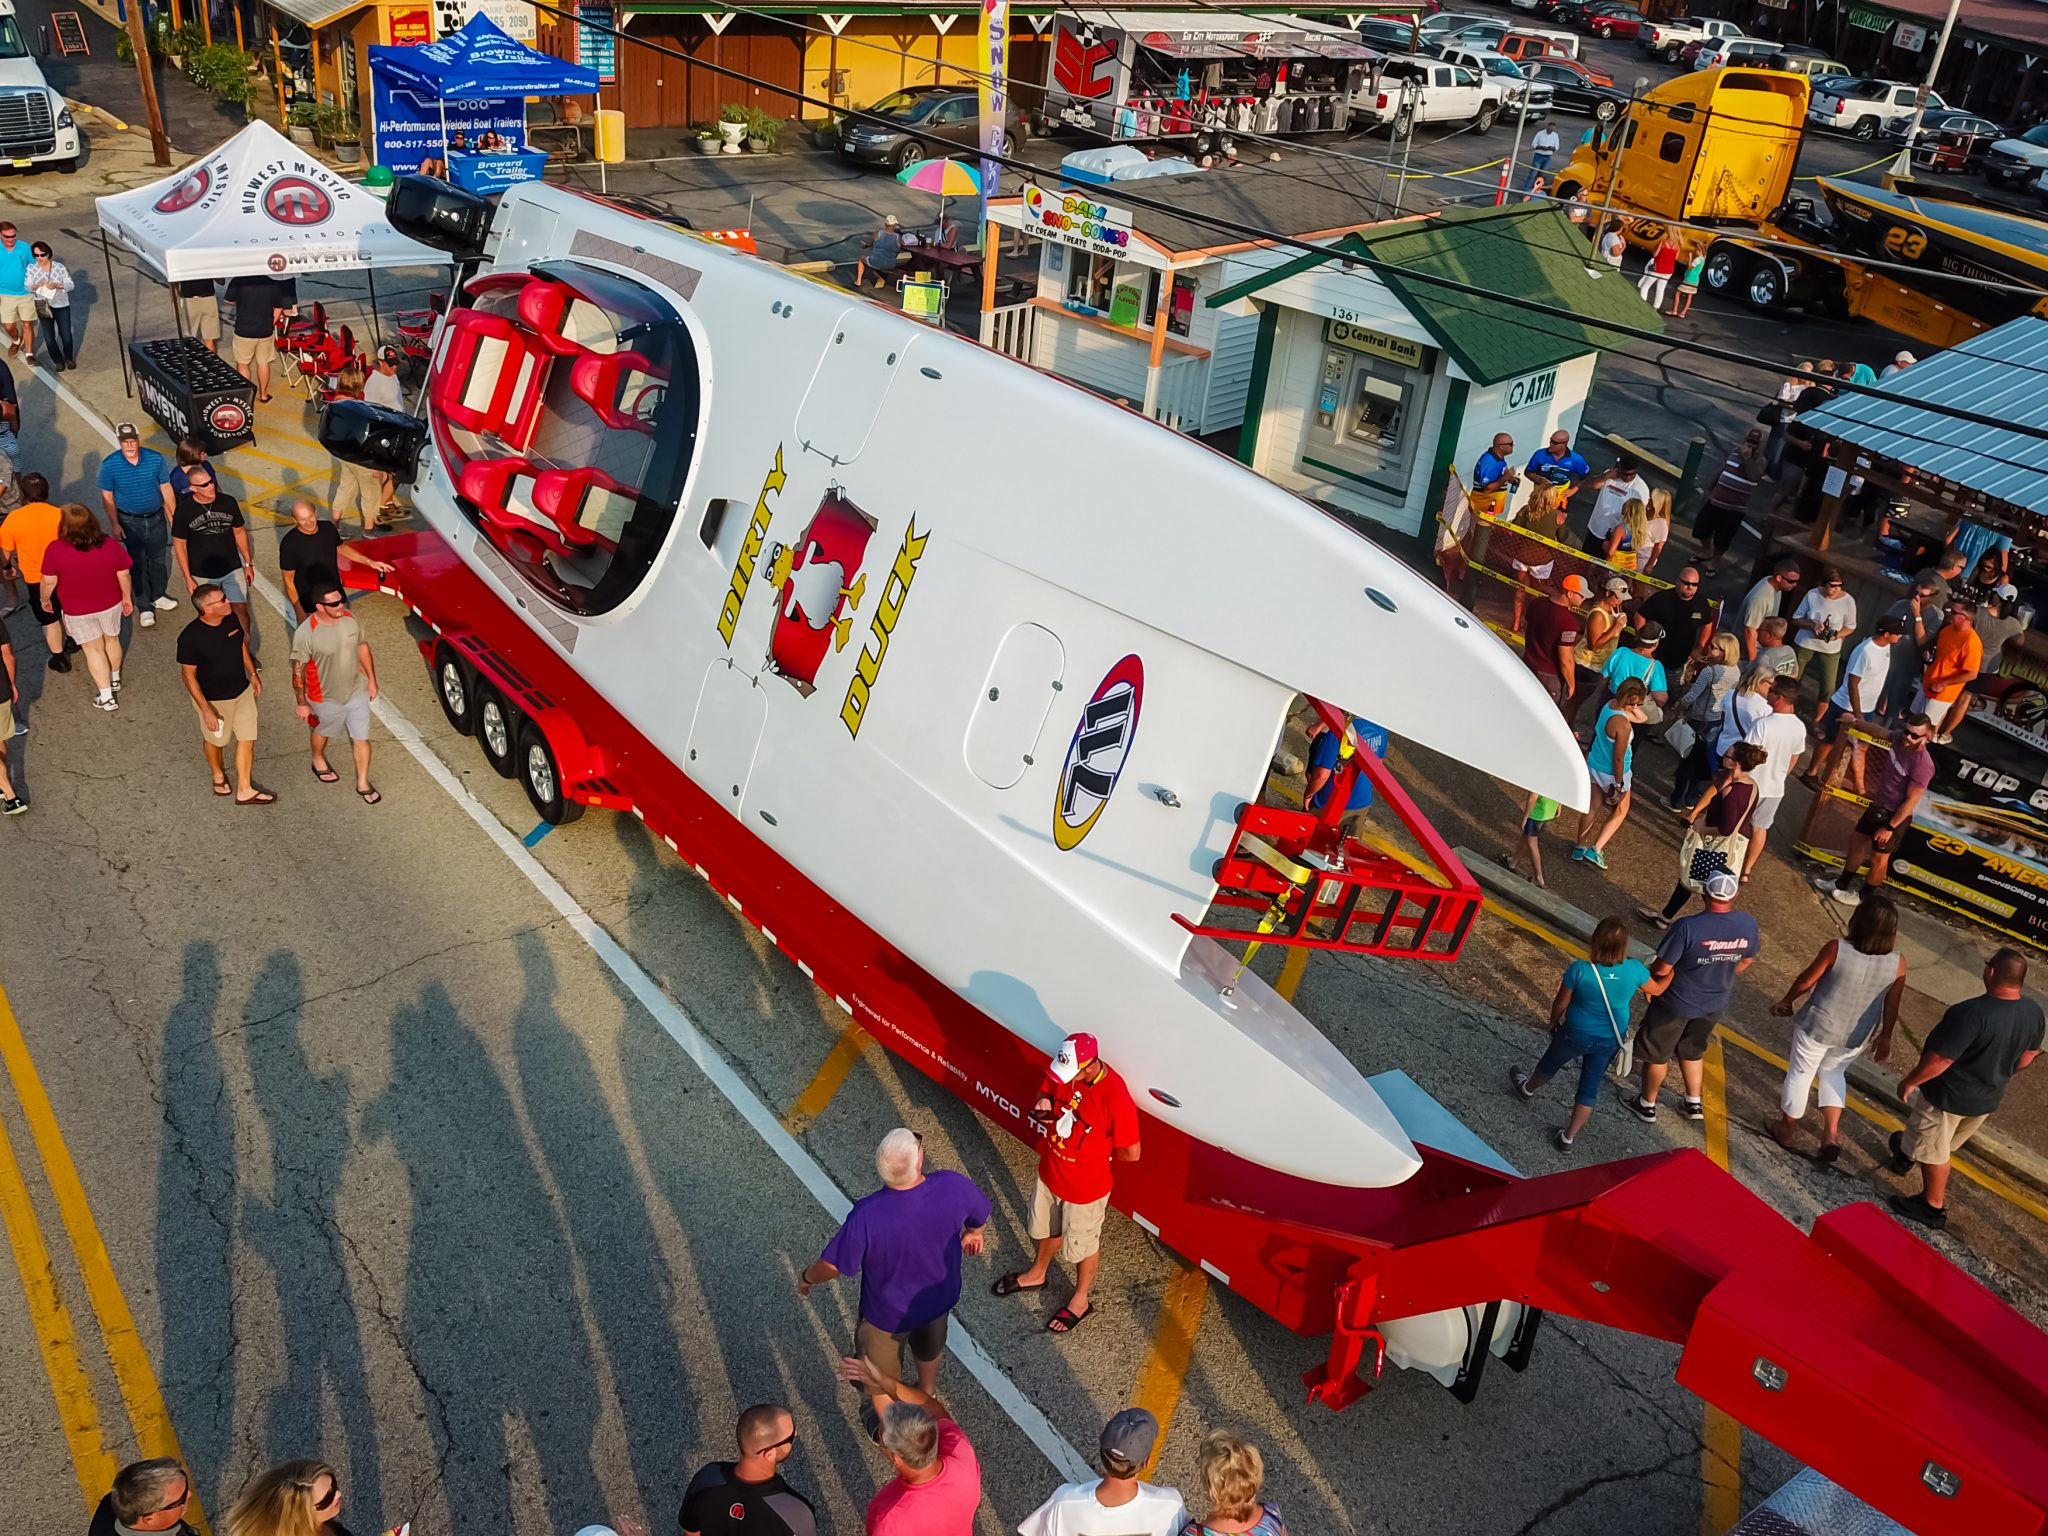 Mystic to Show 3 Boats in Lauderdale, Plans Key West Fun Run